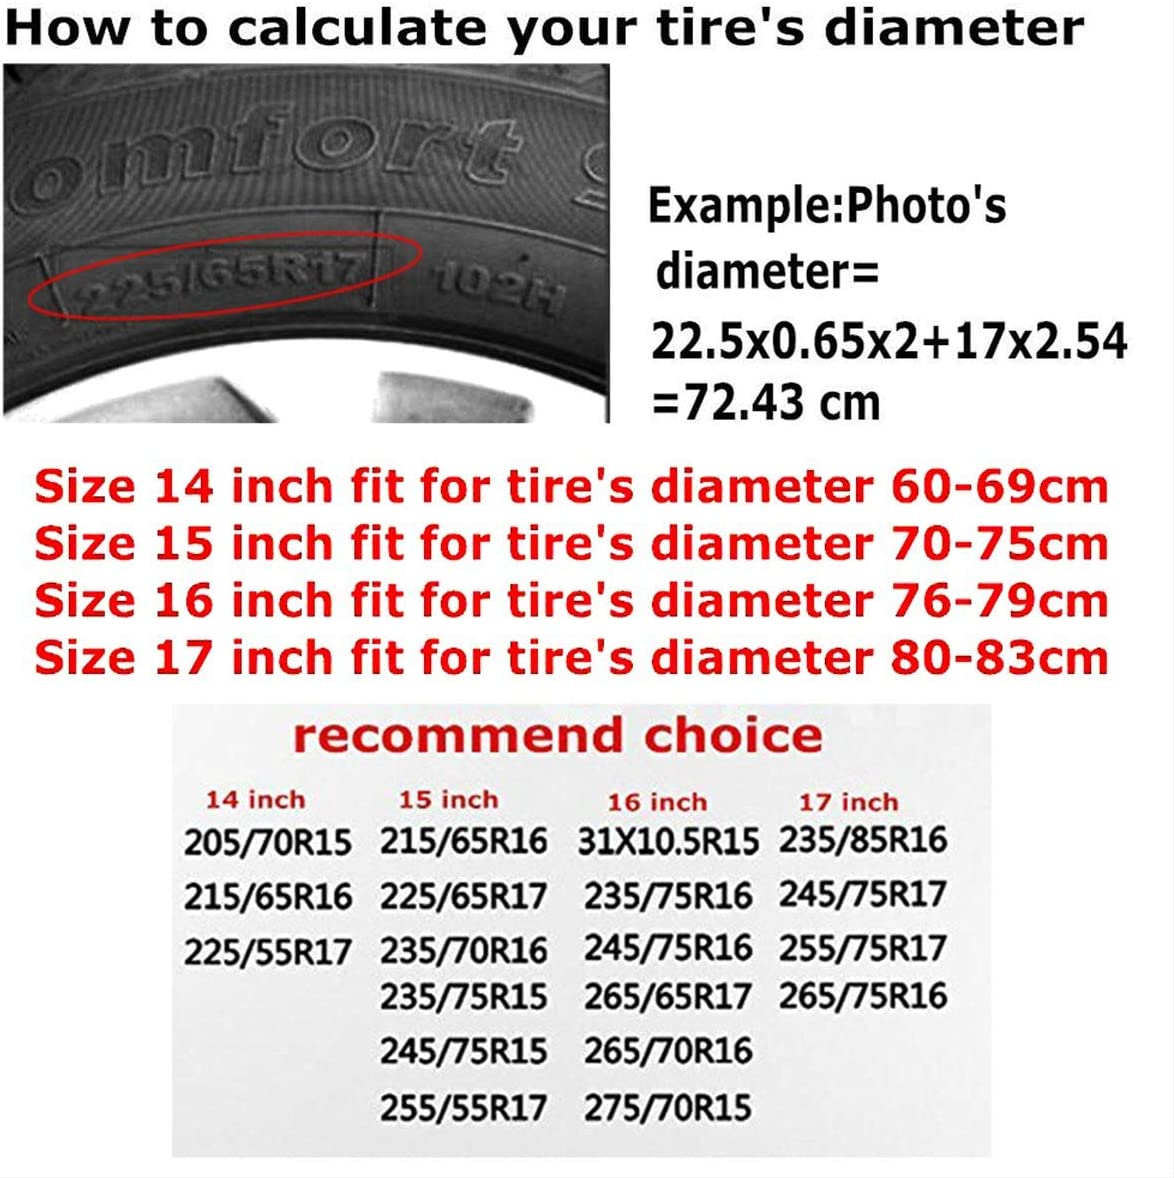 Sunscreen Trailer Rv Off-Road Vehicle Waterproof Wheel Covers-17 Truck Tire Cover Dustproof Narpult Clemson Tigers Suitable for Jeep